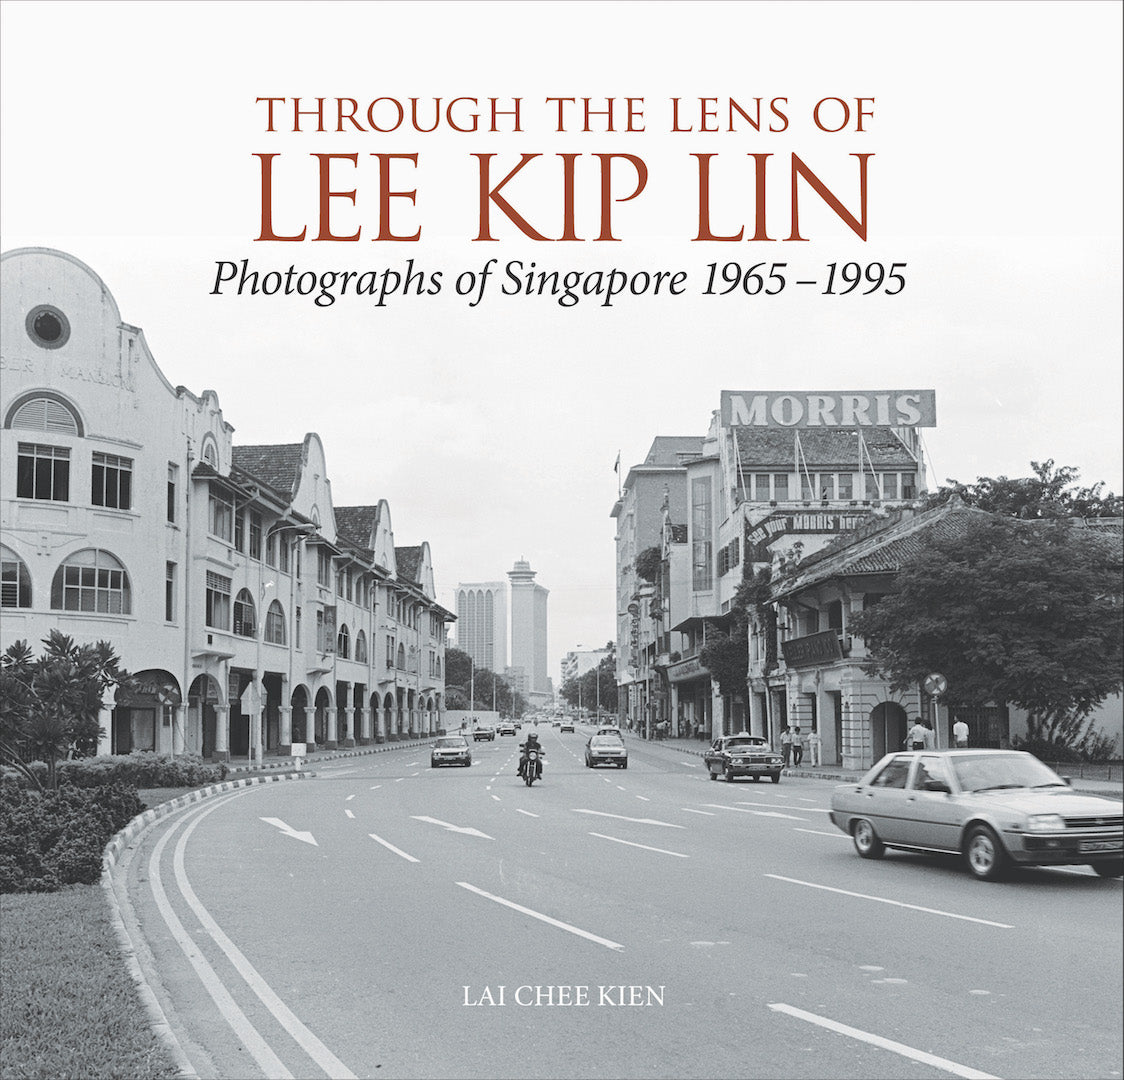 Through the Lens of Lee Kip Lin